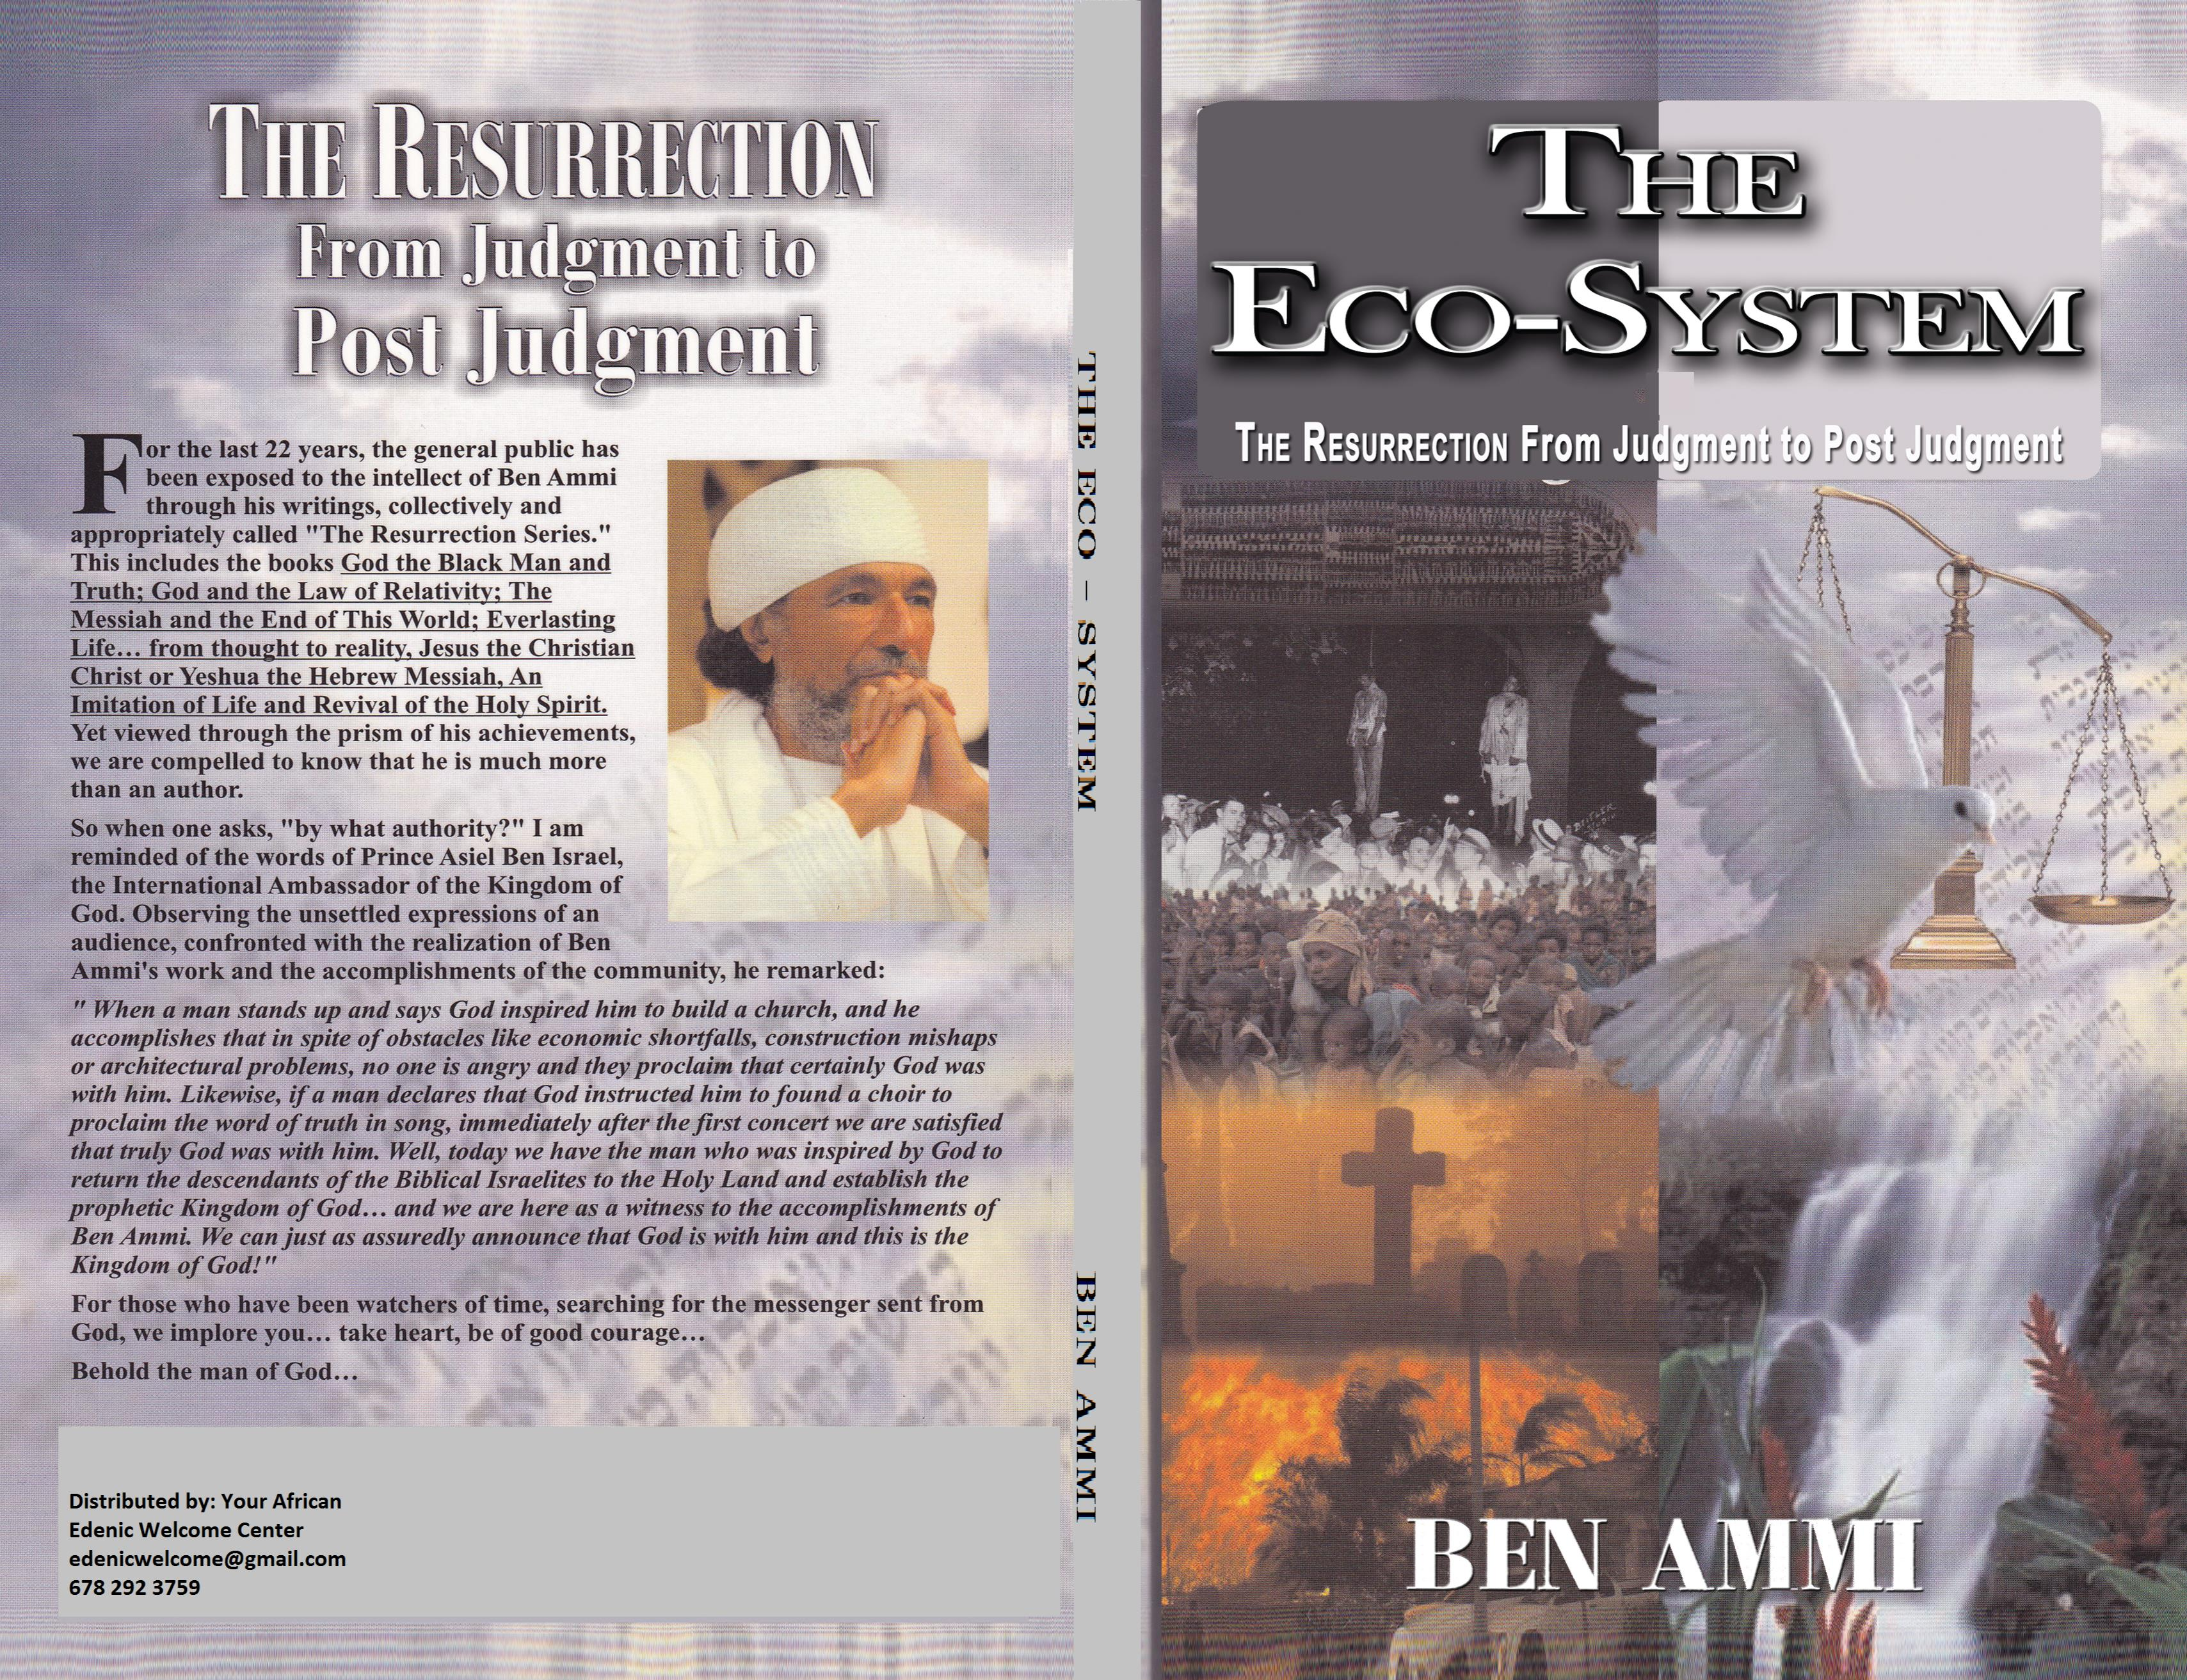 The Eco-System cover image